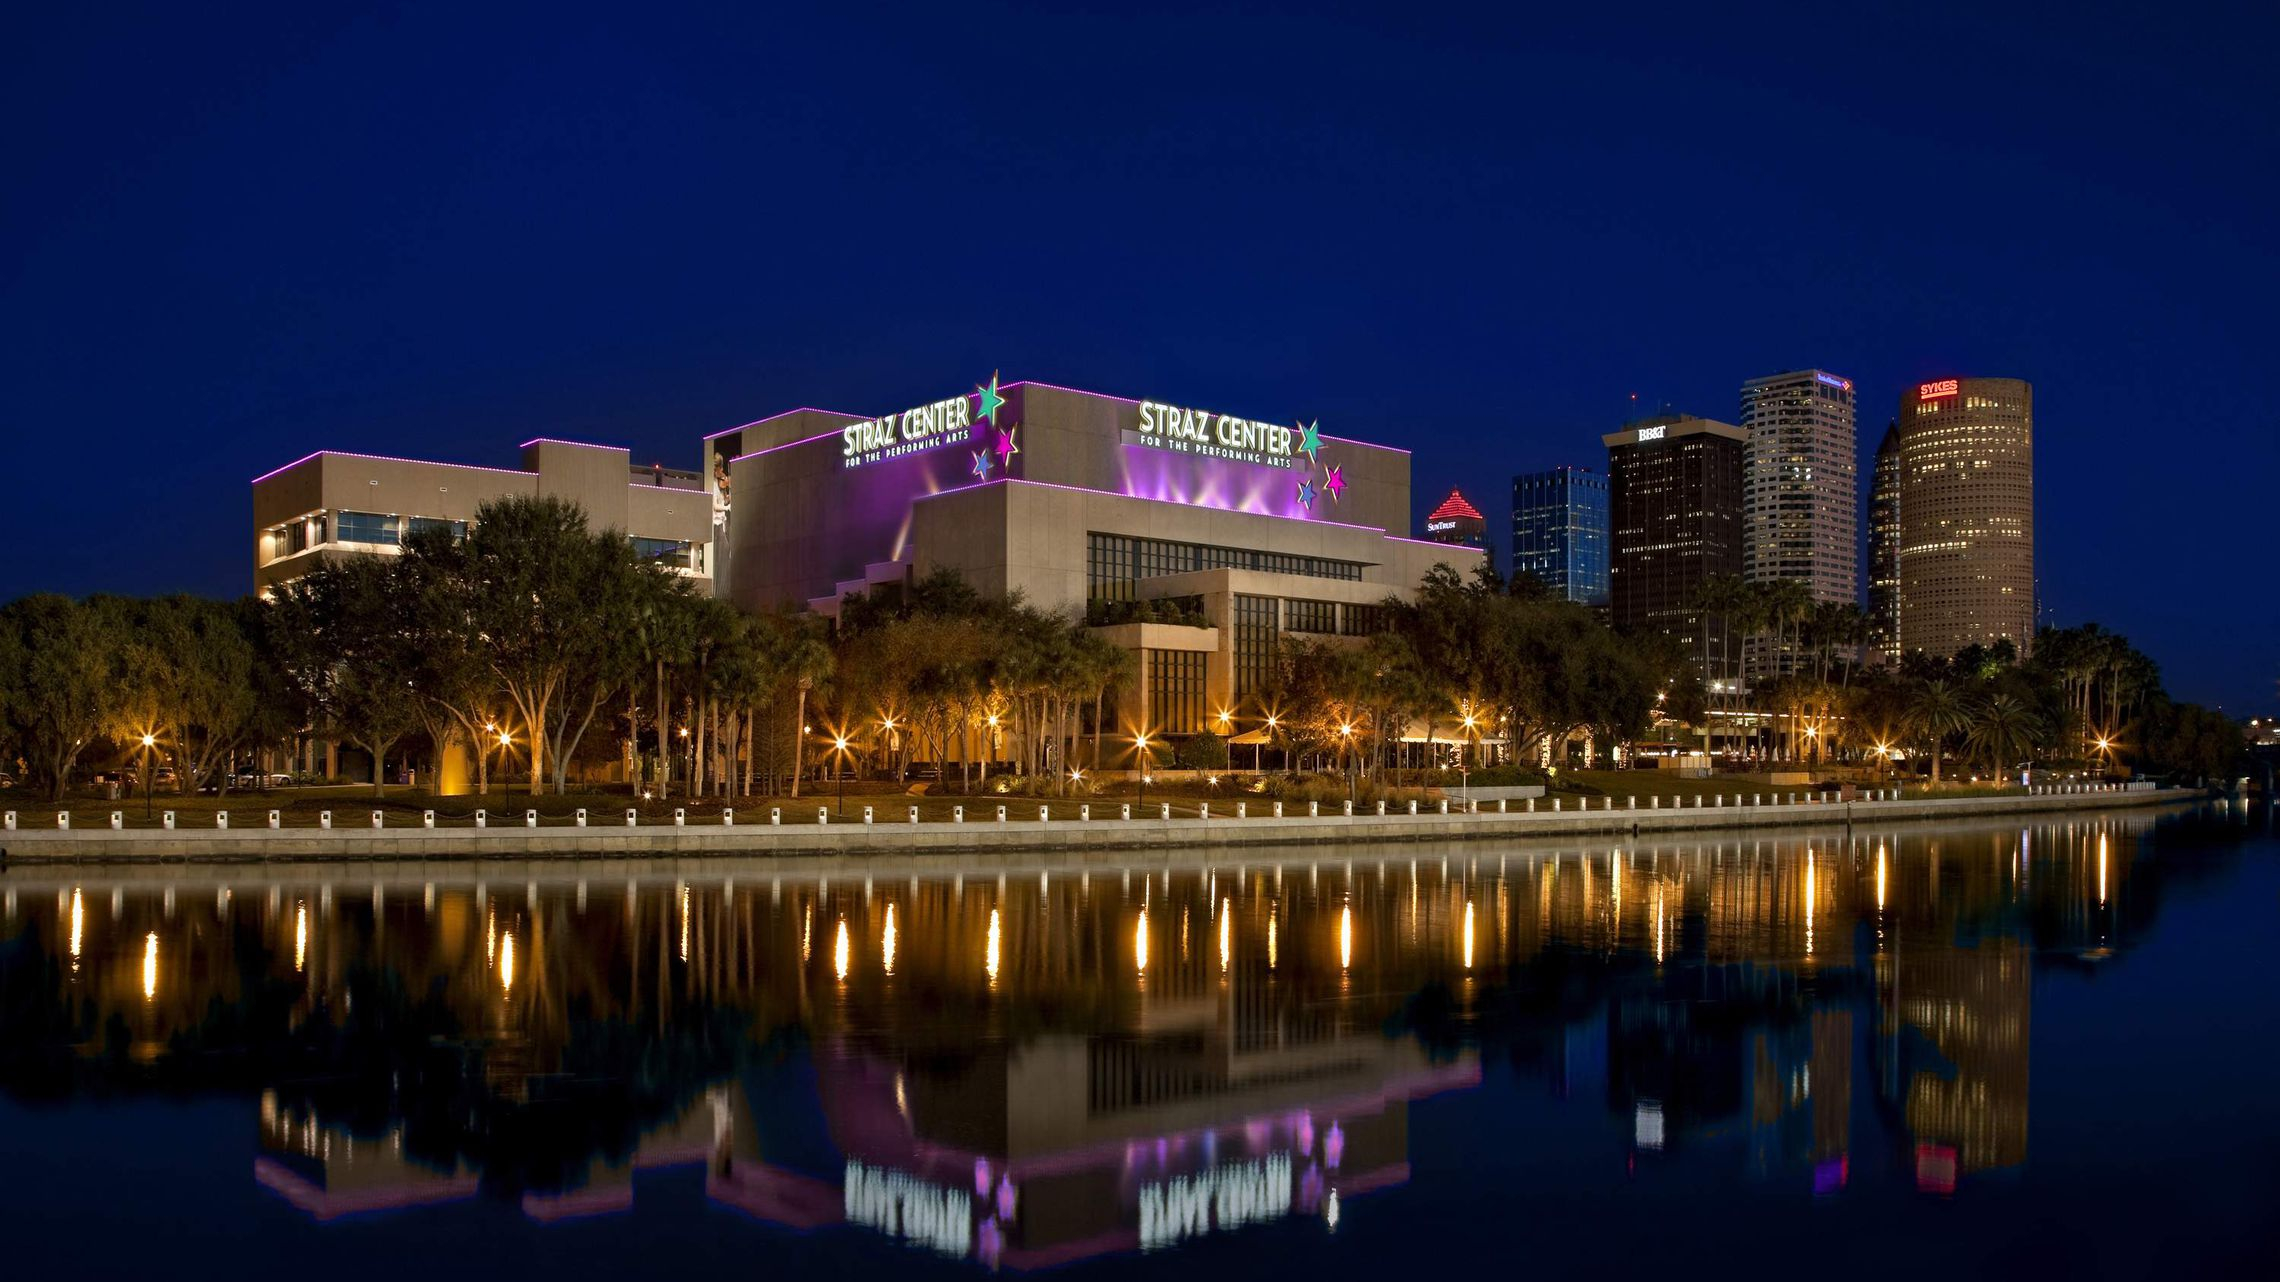 The Straz Wants More Parking On The Riverfront. City Hall regarding Tampa Bay Performing Arts Center Schedule